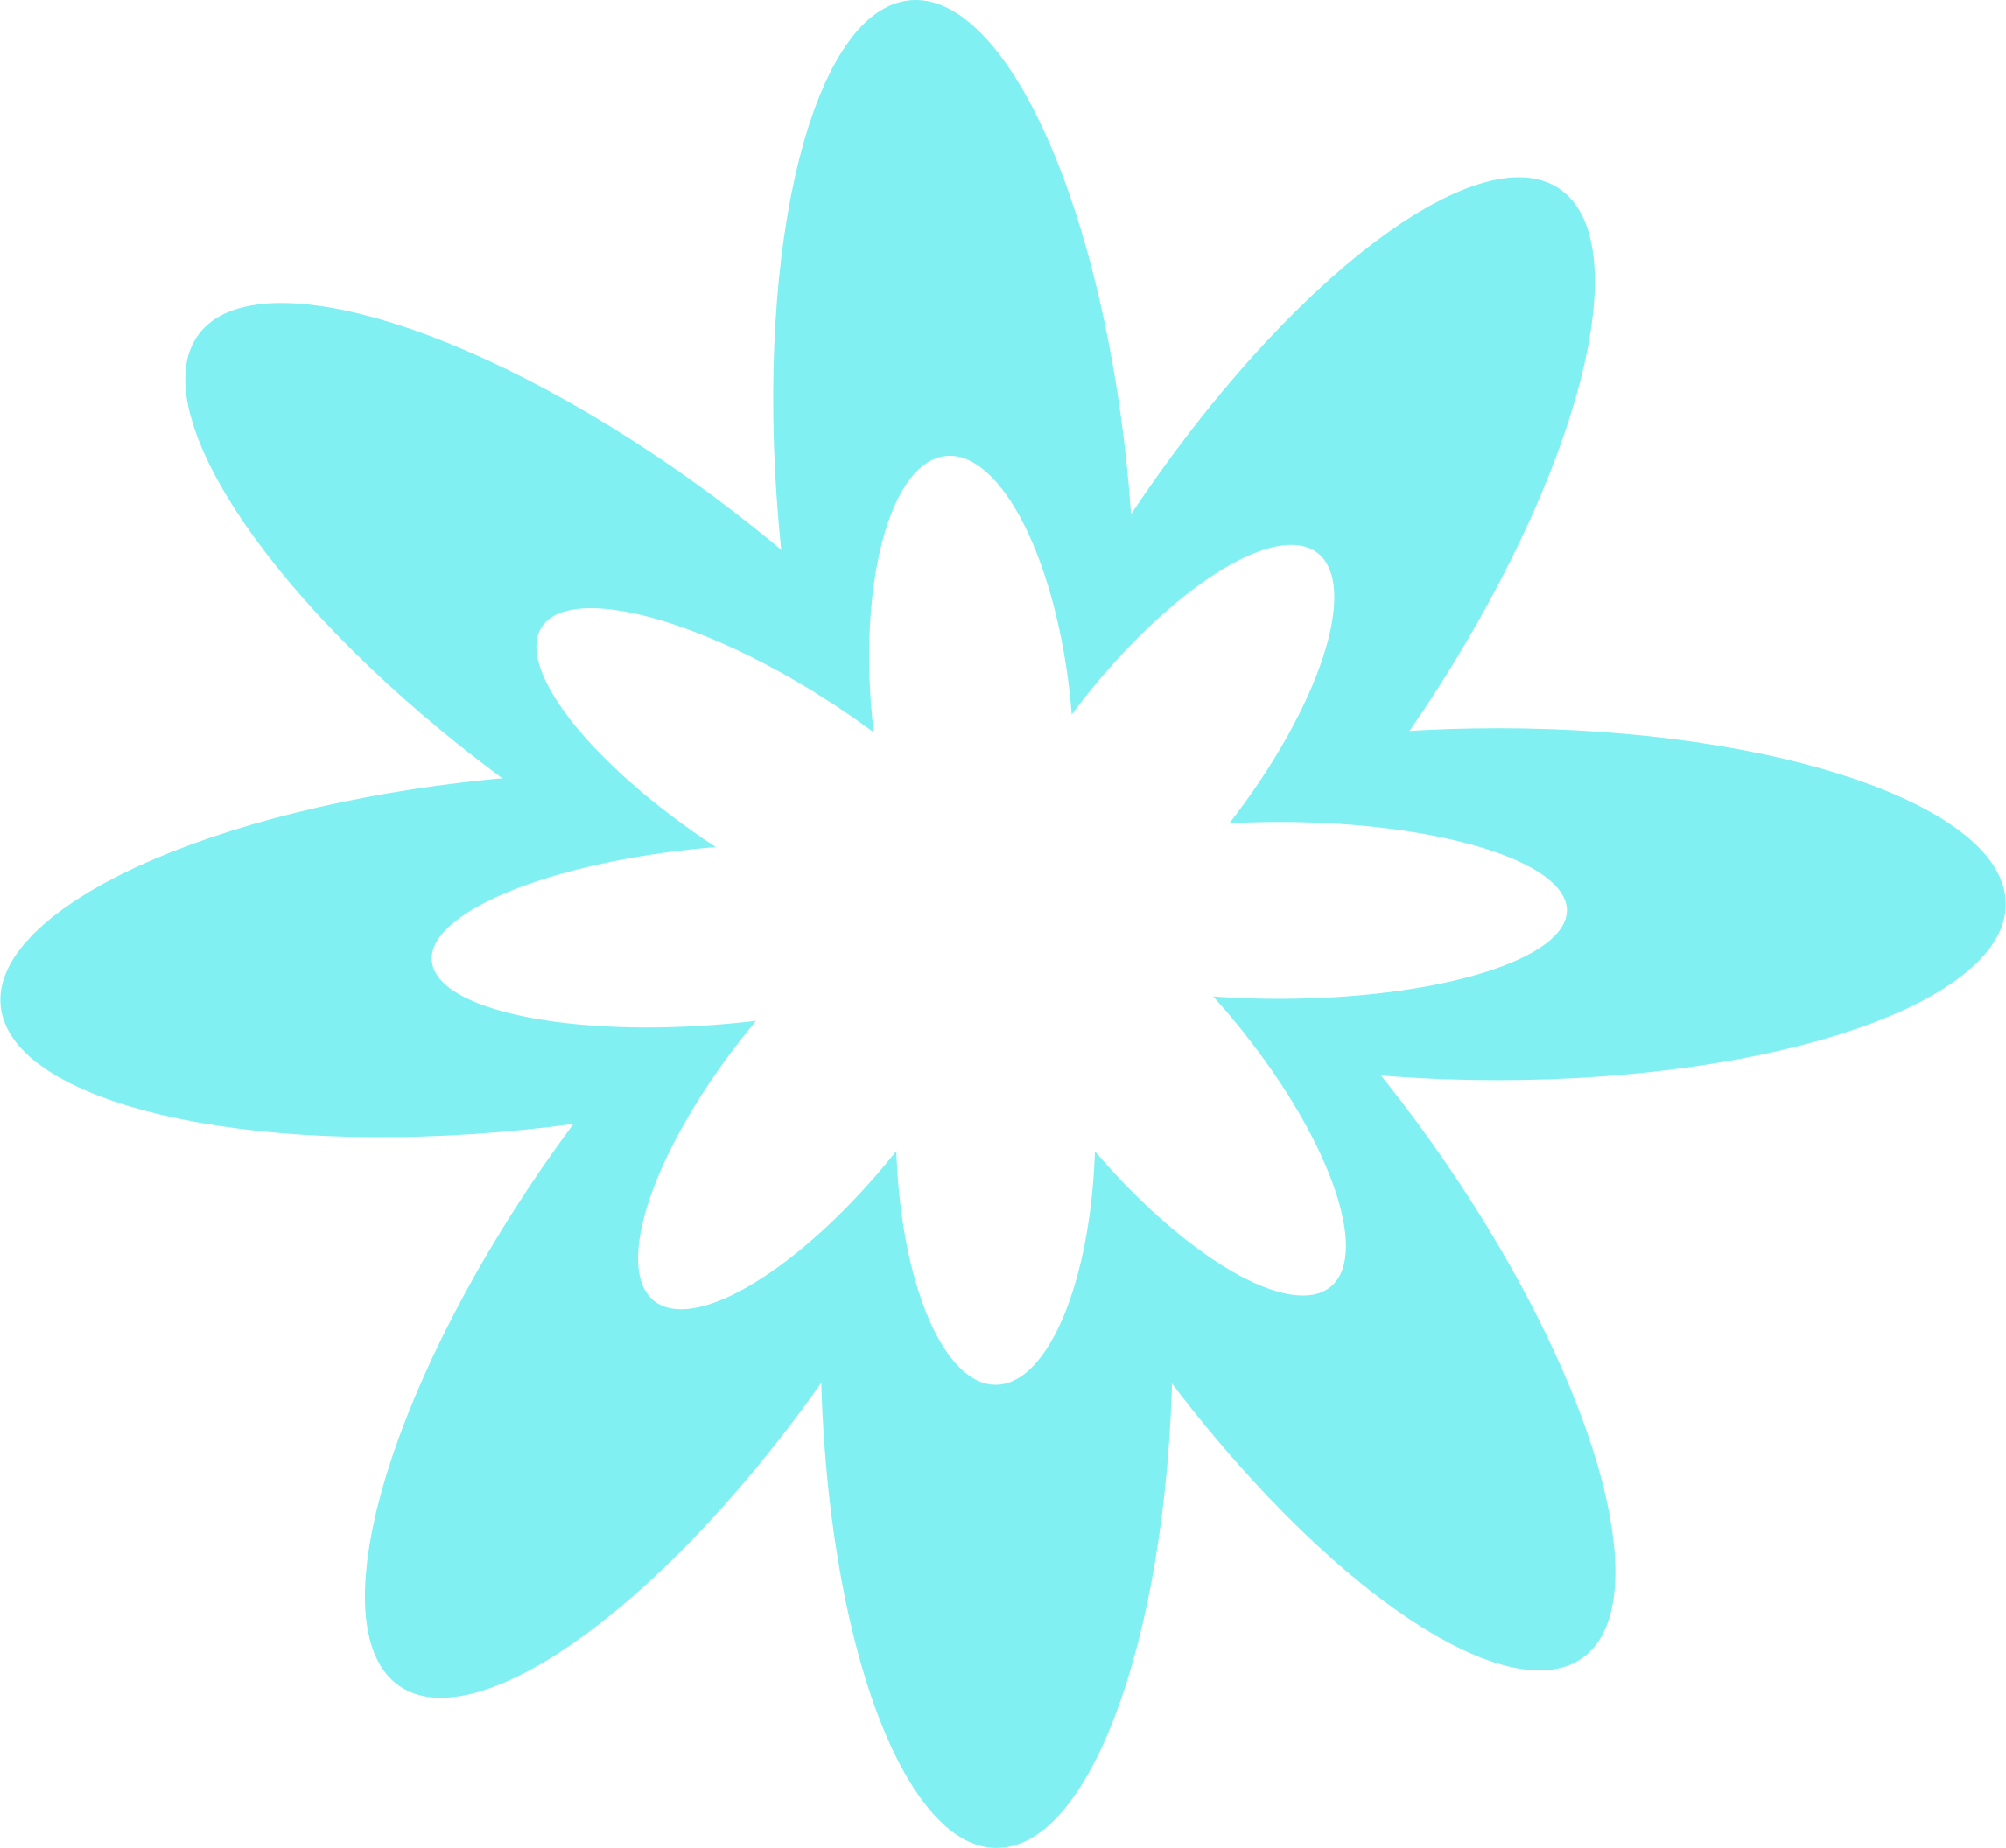 Turquoise flower png. Blue burst icons free